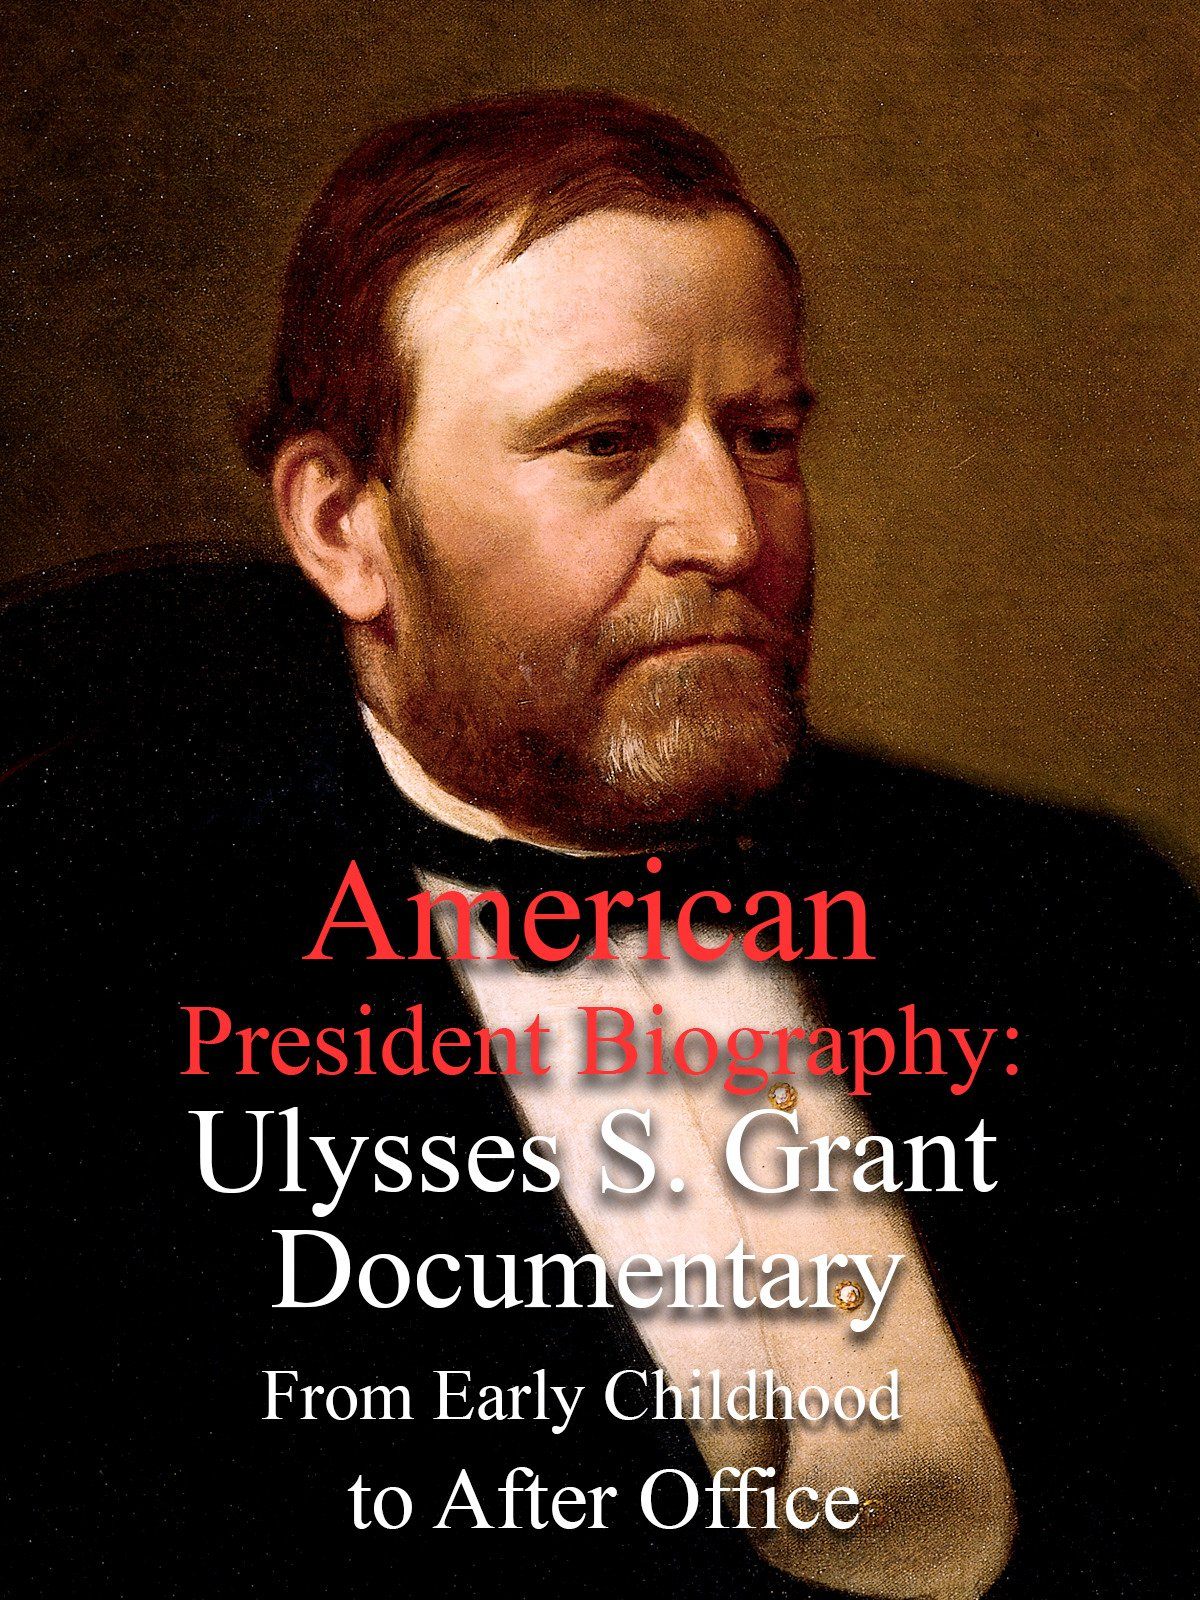 American President Biography: Ulysses S. Grant Documentary From Early Childhood to After Office